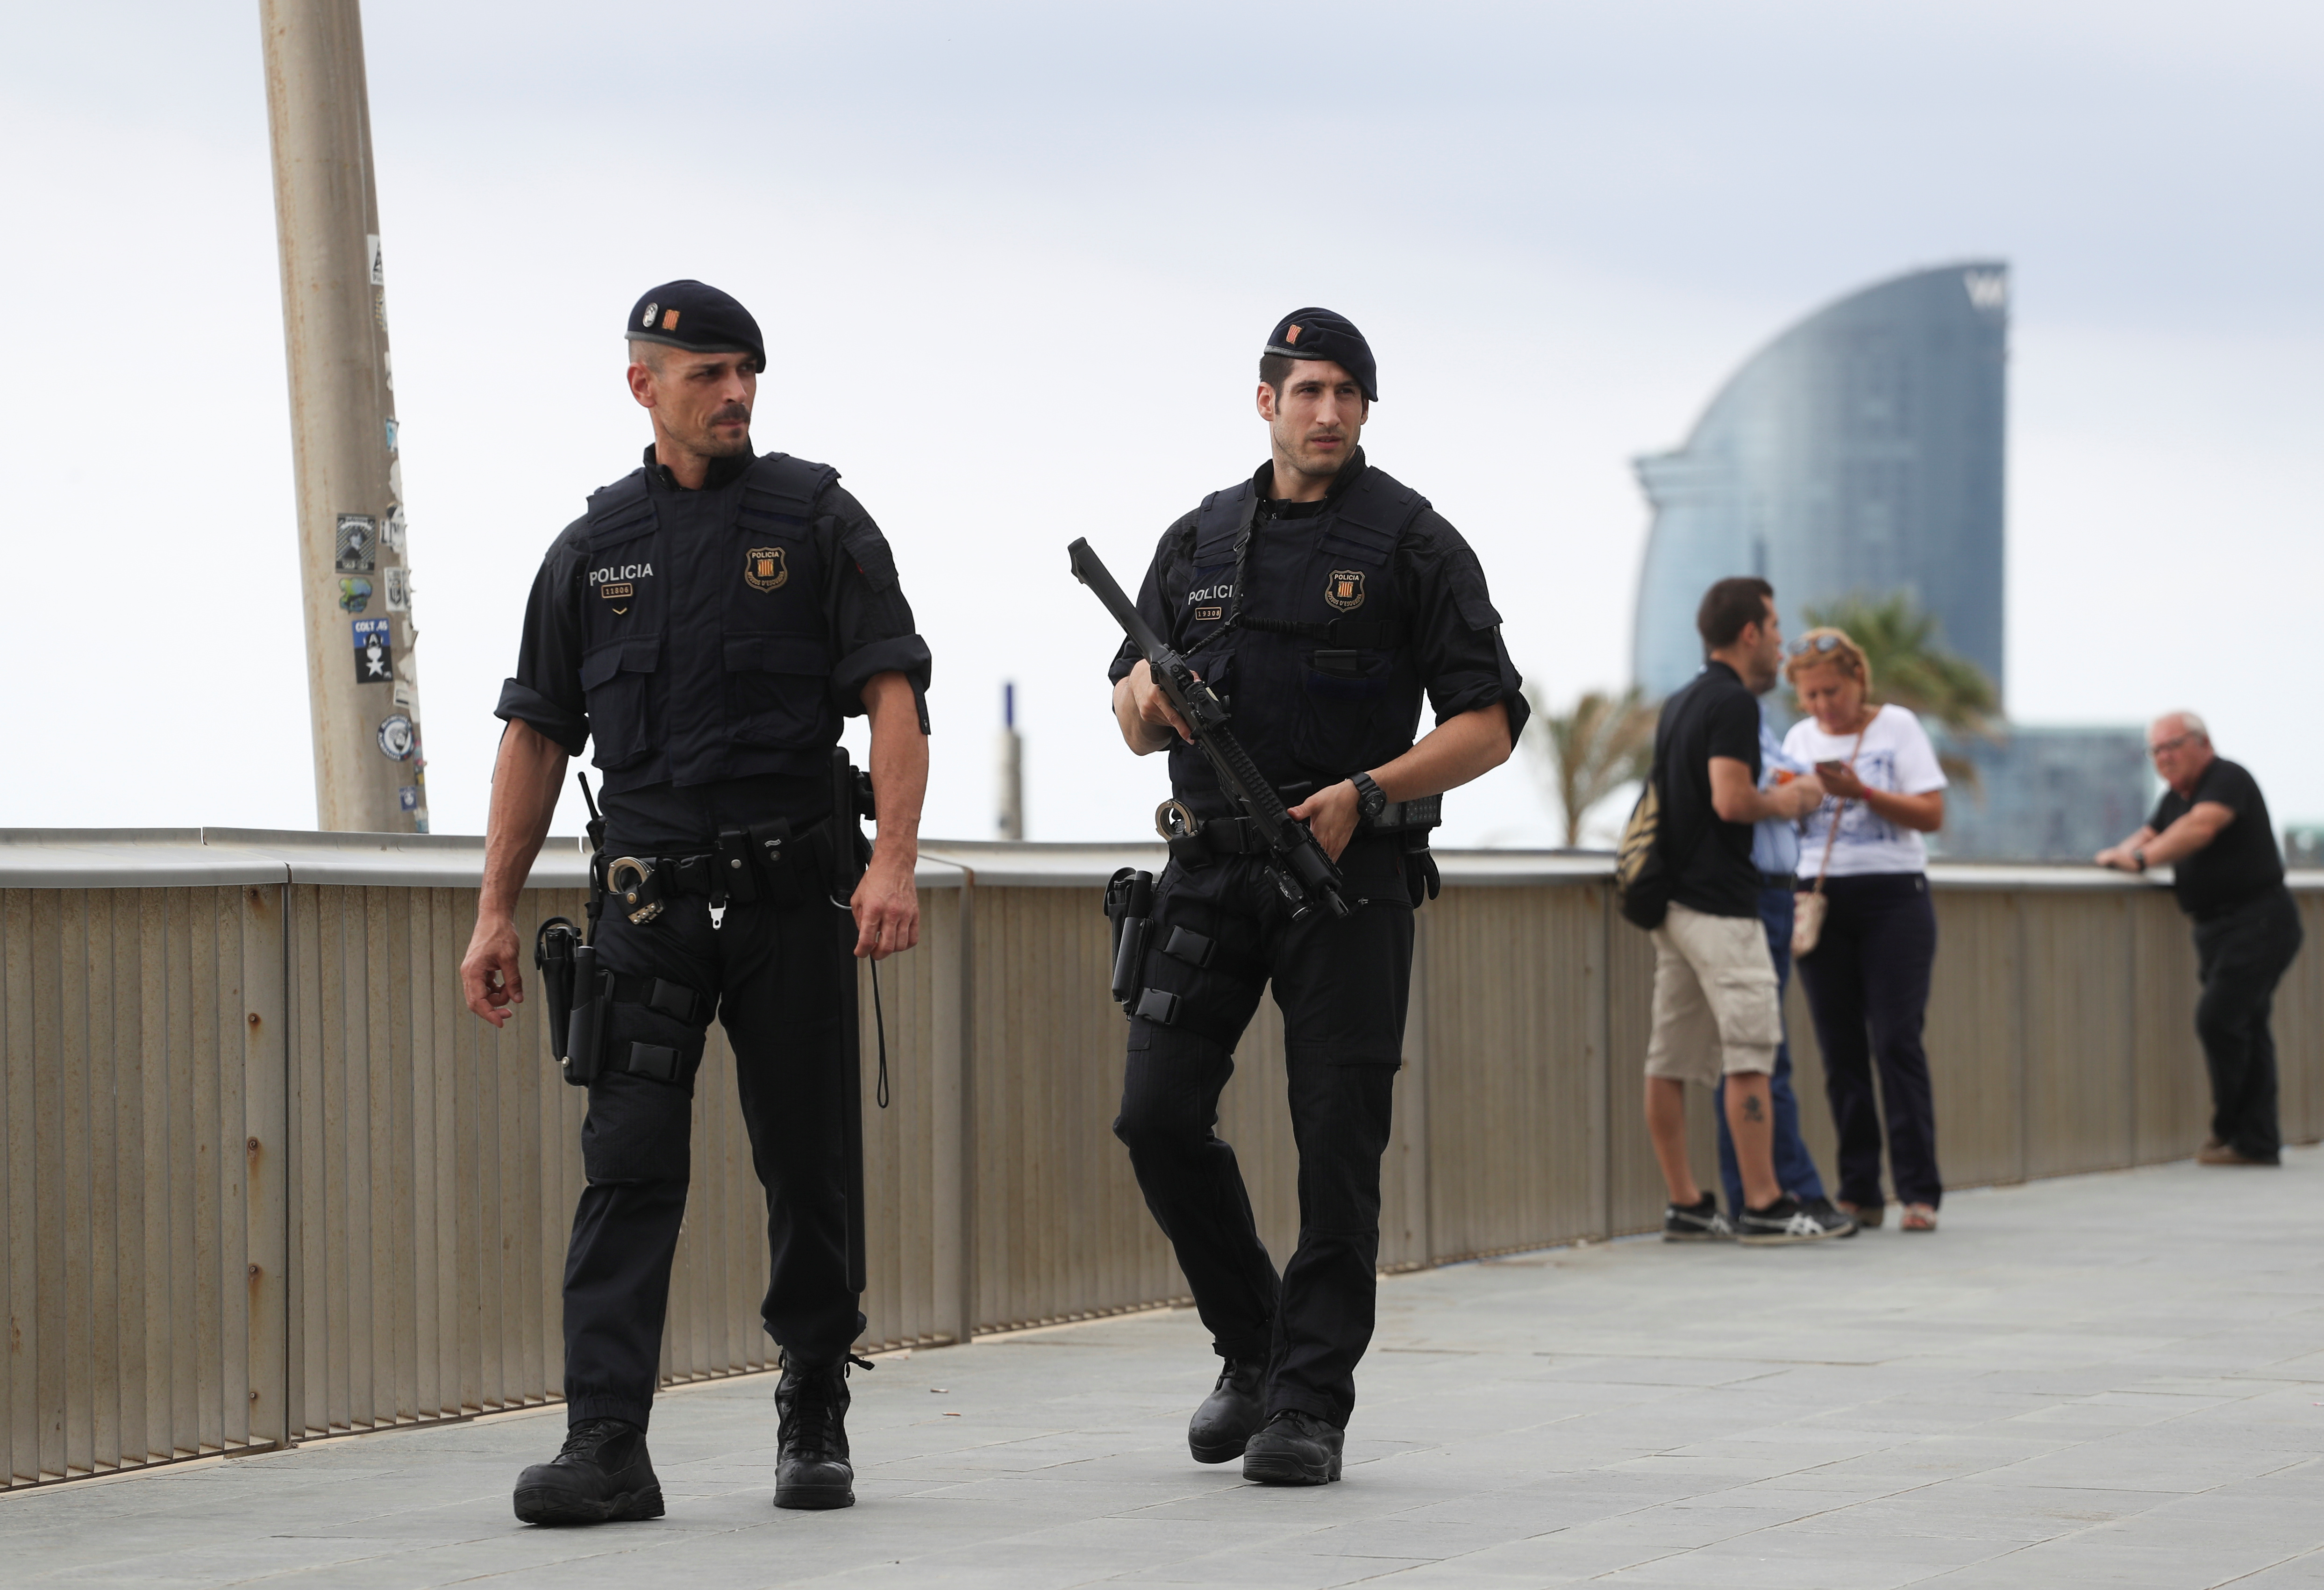 Spain to review police response to Barcelona attack amid questions